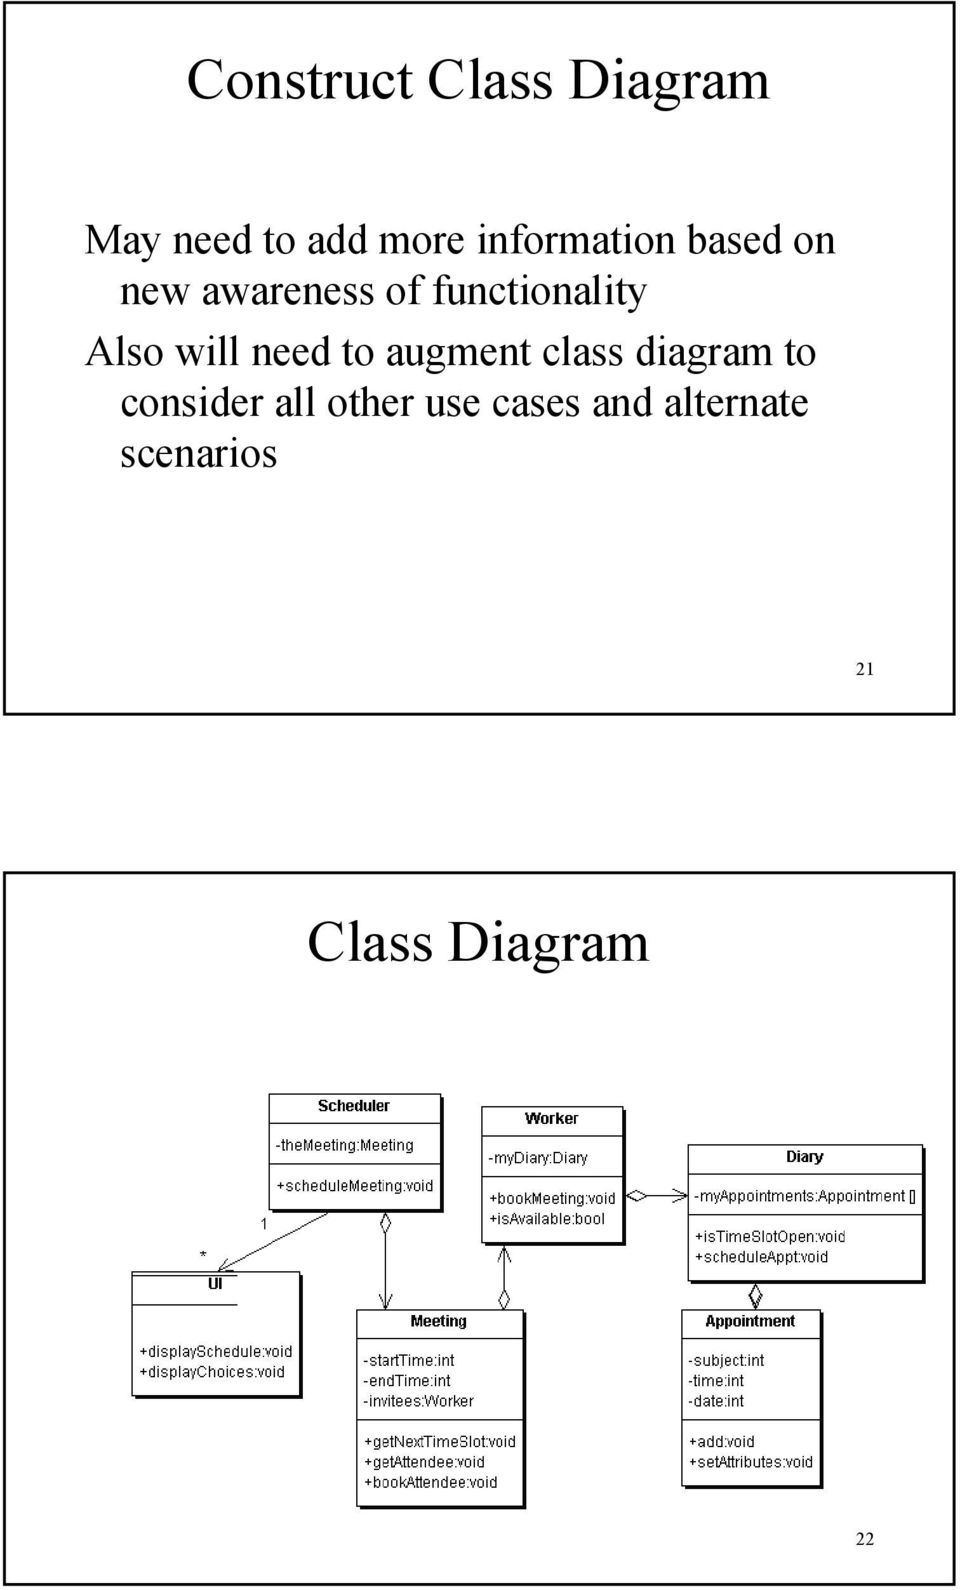 Also will need to augment class diagram to consider